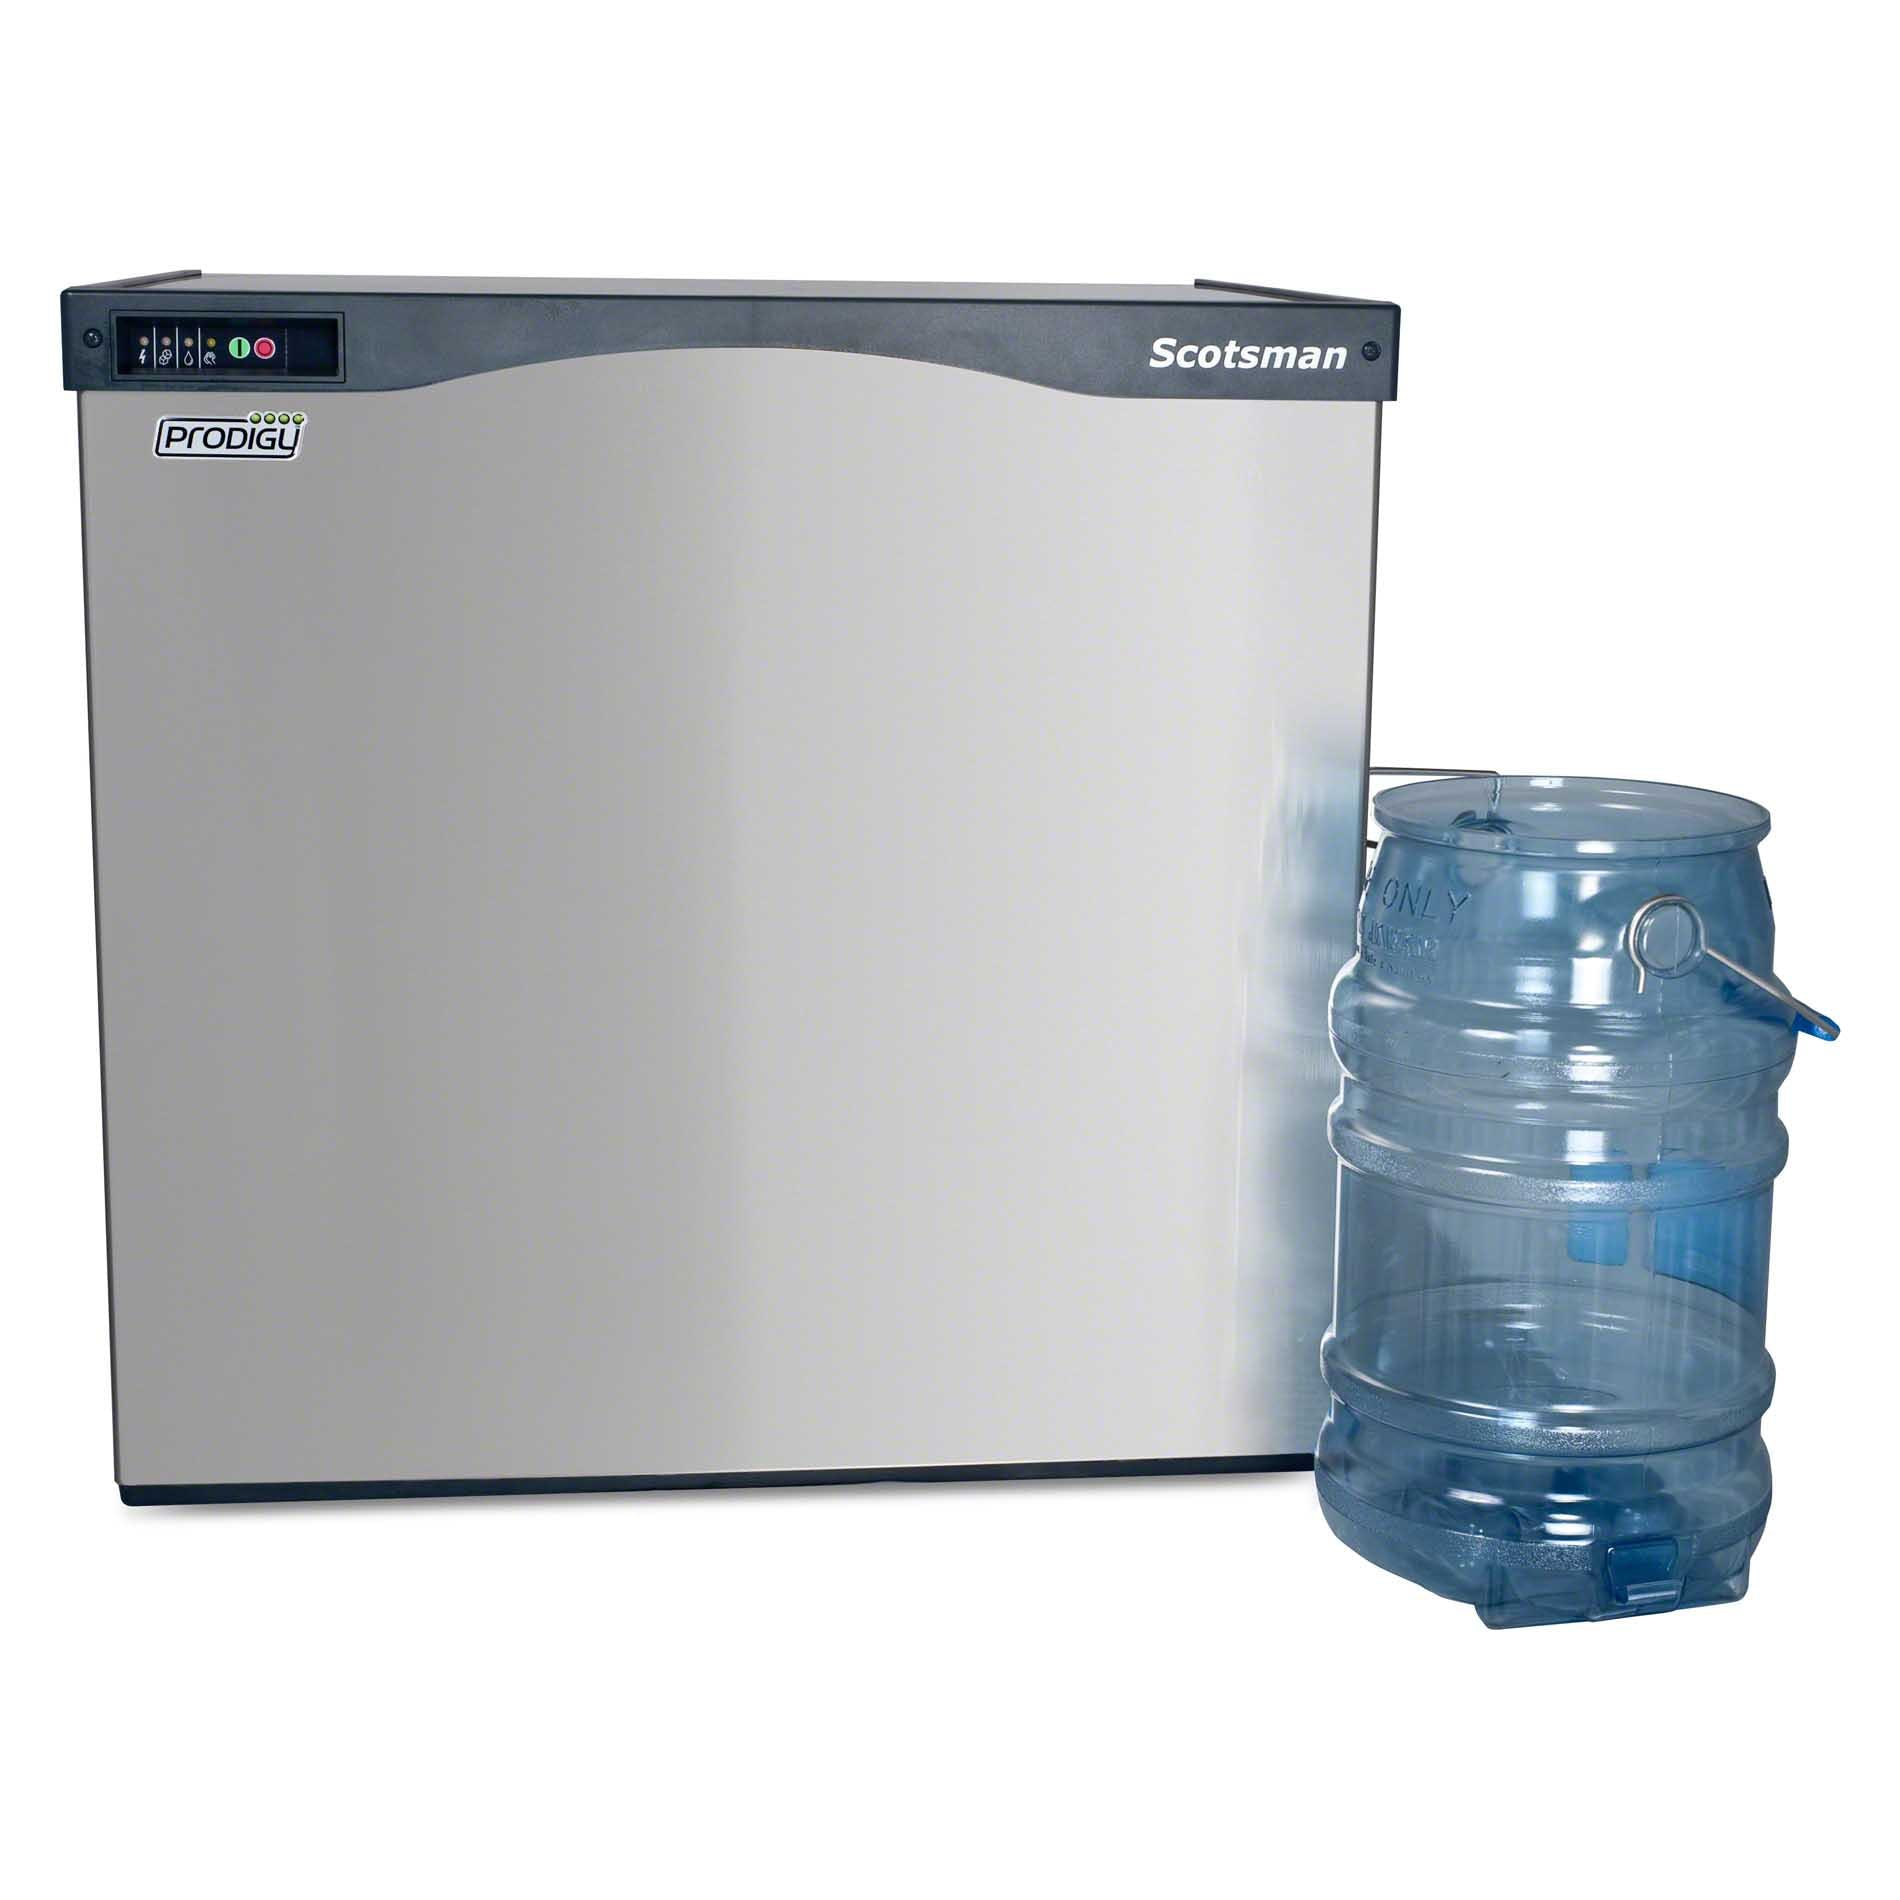 Scotsman - C1030SW-32A 1009 lb Half Size Cube Ice Machine - Prodigy Series Ice machine sold by Food Service Warehouse